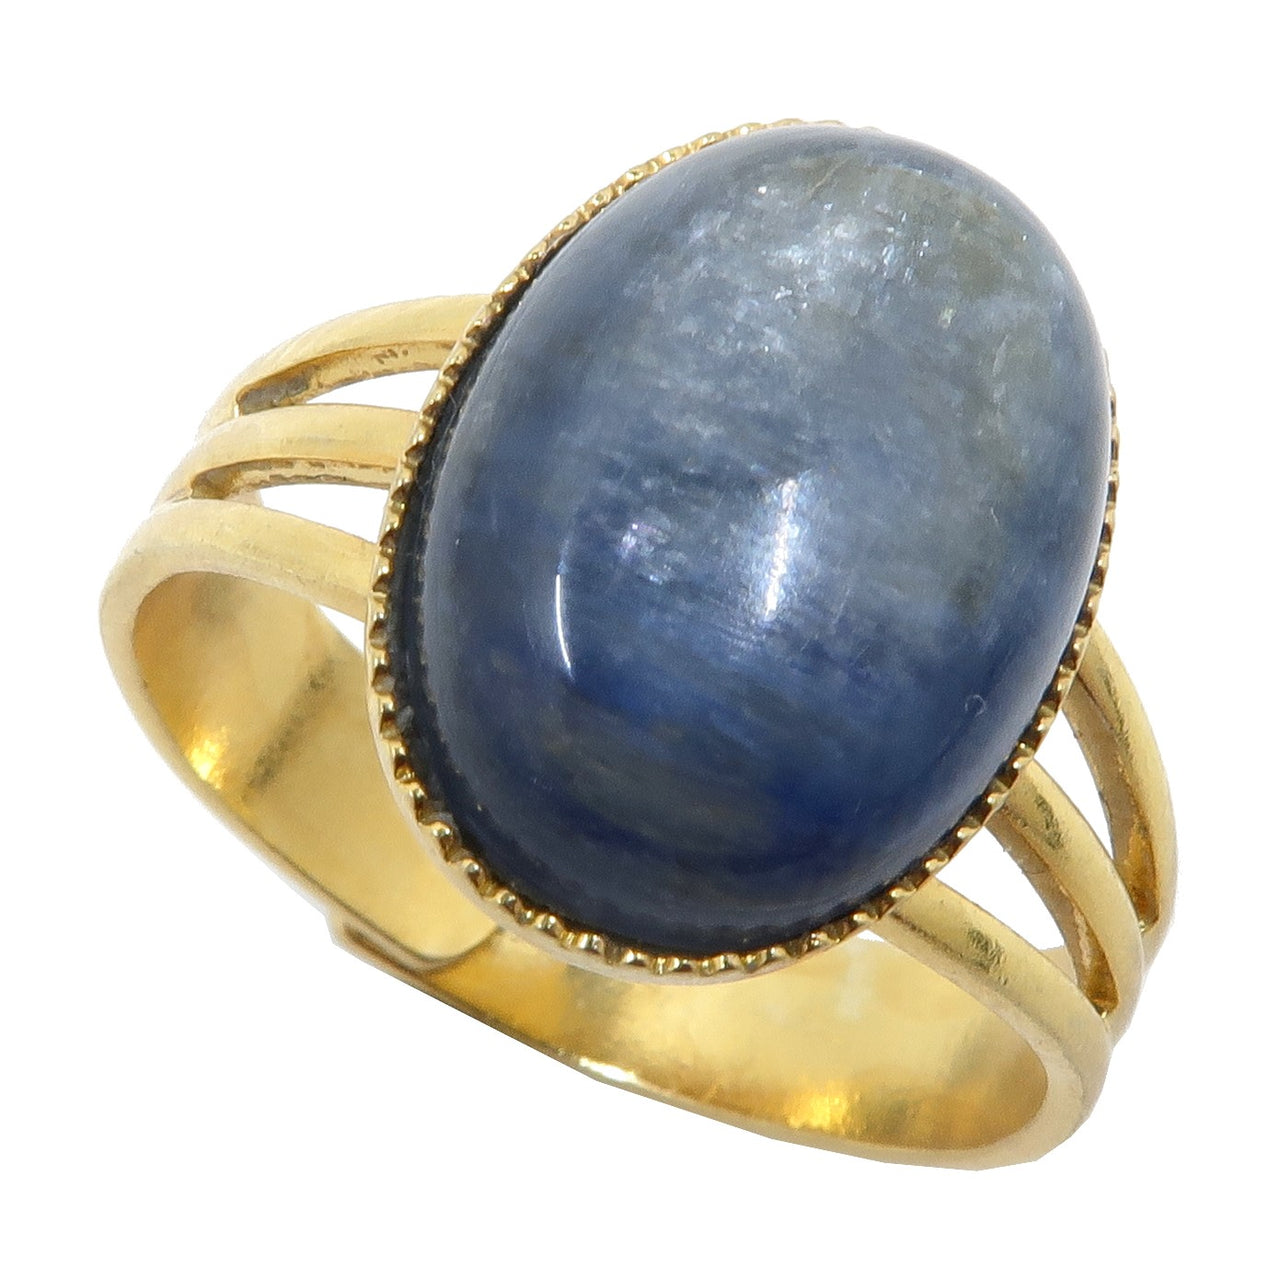 Kyanite Blue Ring 4-10 Boutique Gemstone Oval Shiny Stone Adjustable Metal B02 (Gold)